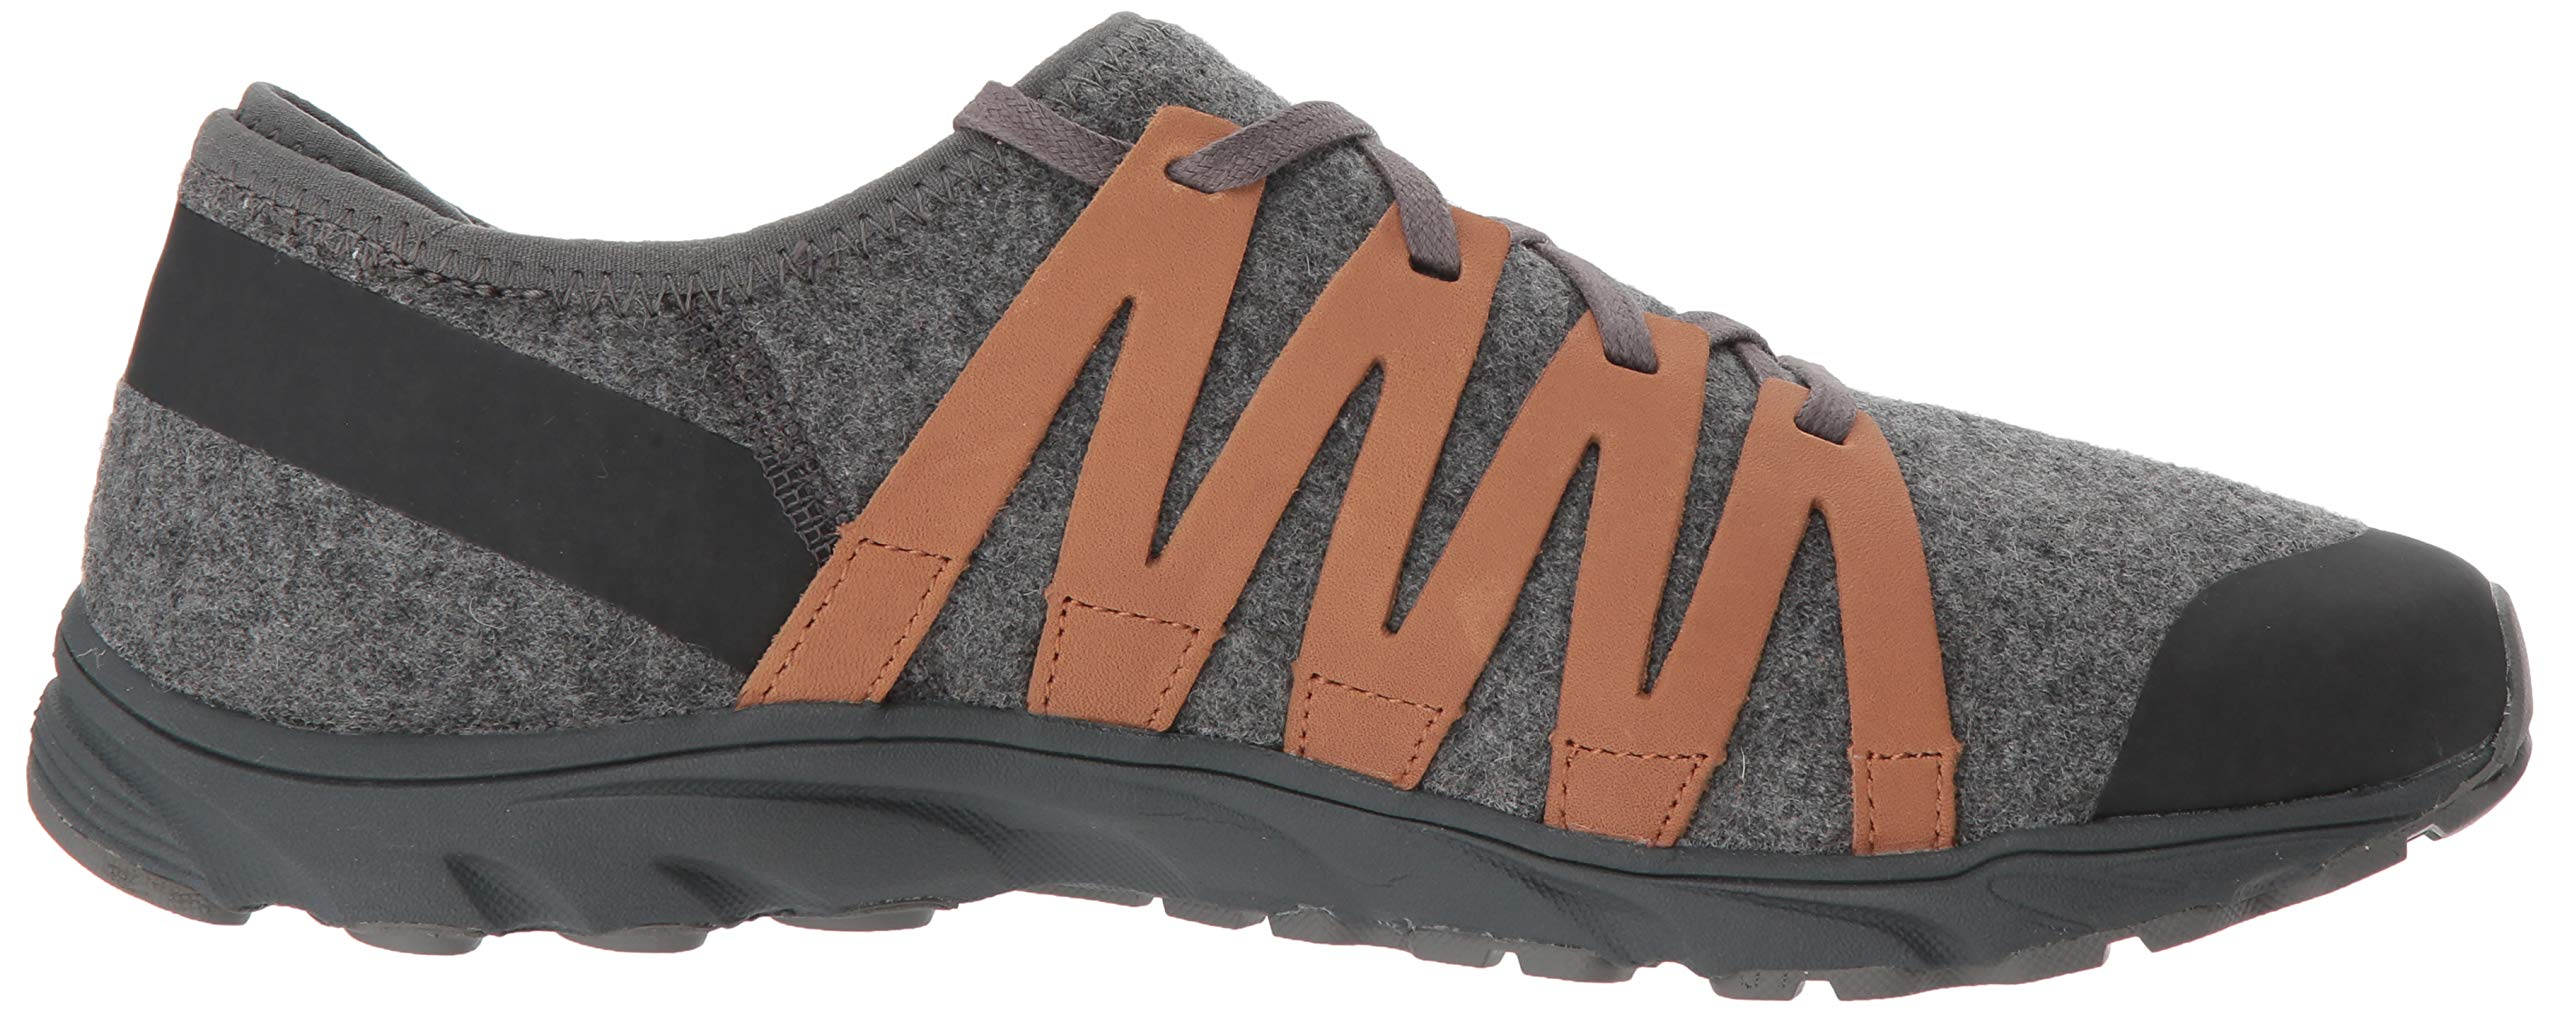 Merrell Women's Riveter Wool Sneaker Charcoal 11 M US by Merrell (Image #7)